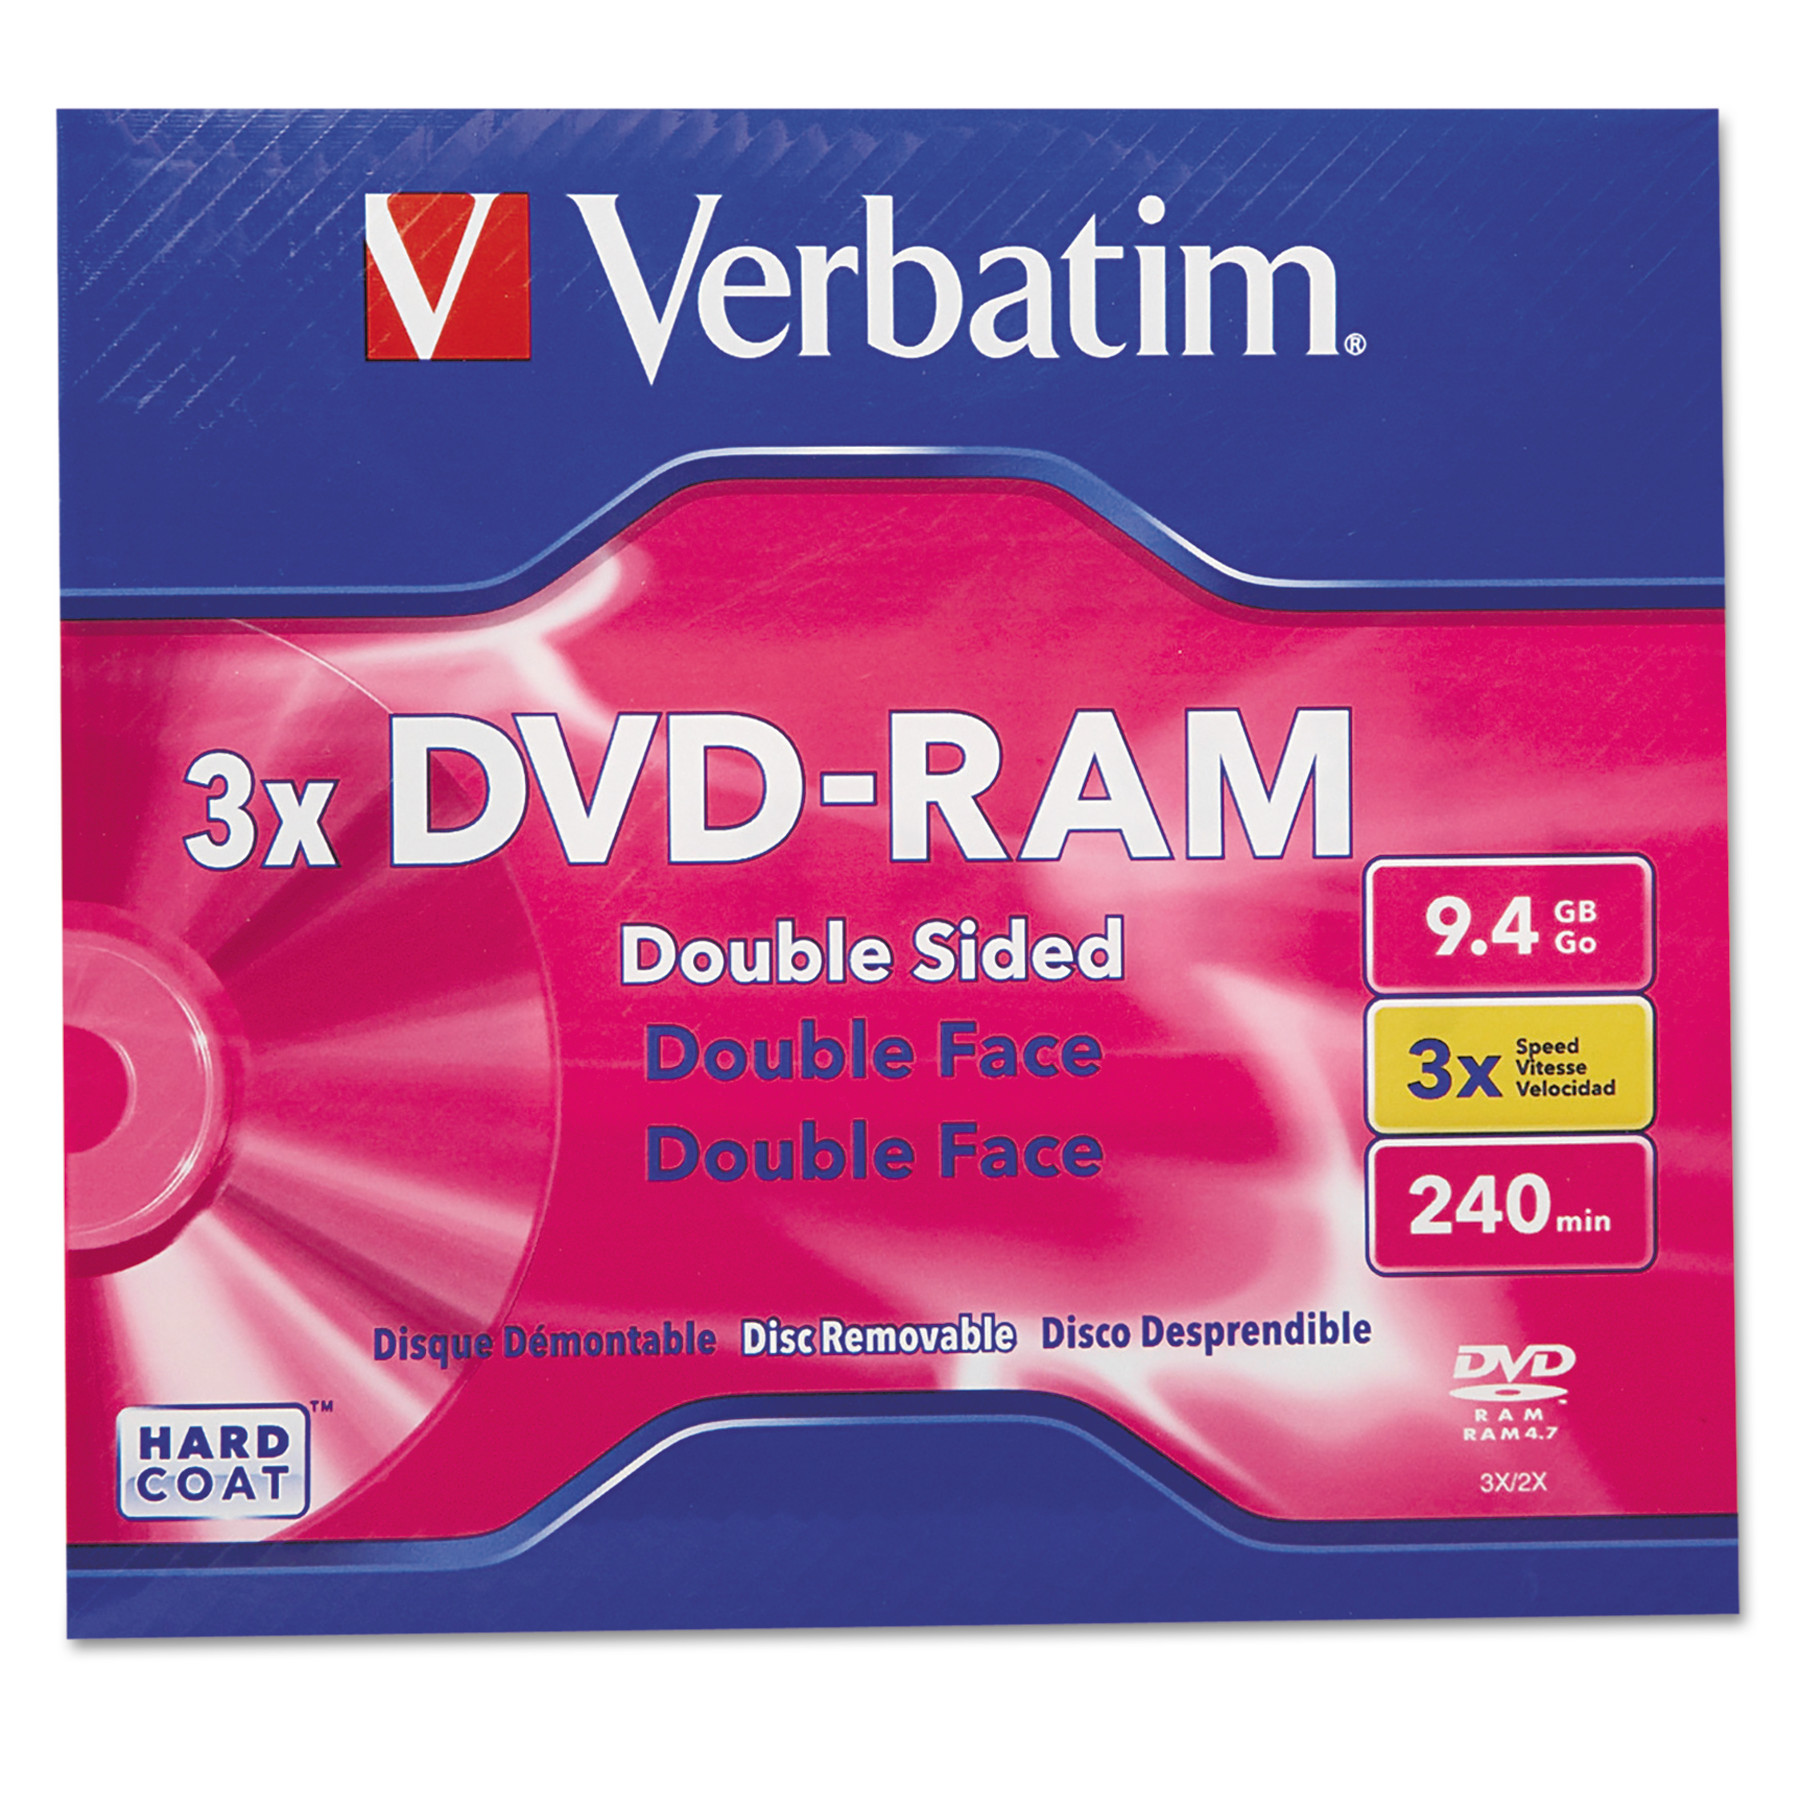 Verbatim Type 4 Double-Sided DVD-RAM Cartridge, 9.4GB, 3x -VER95003